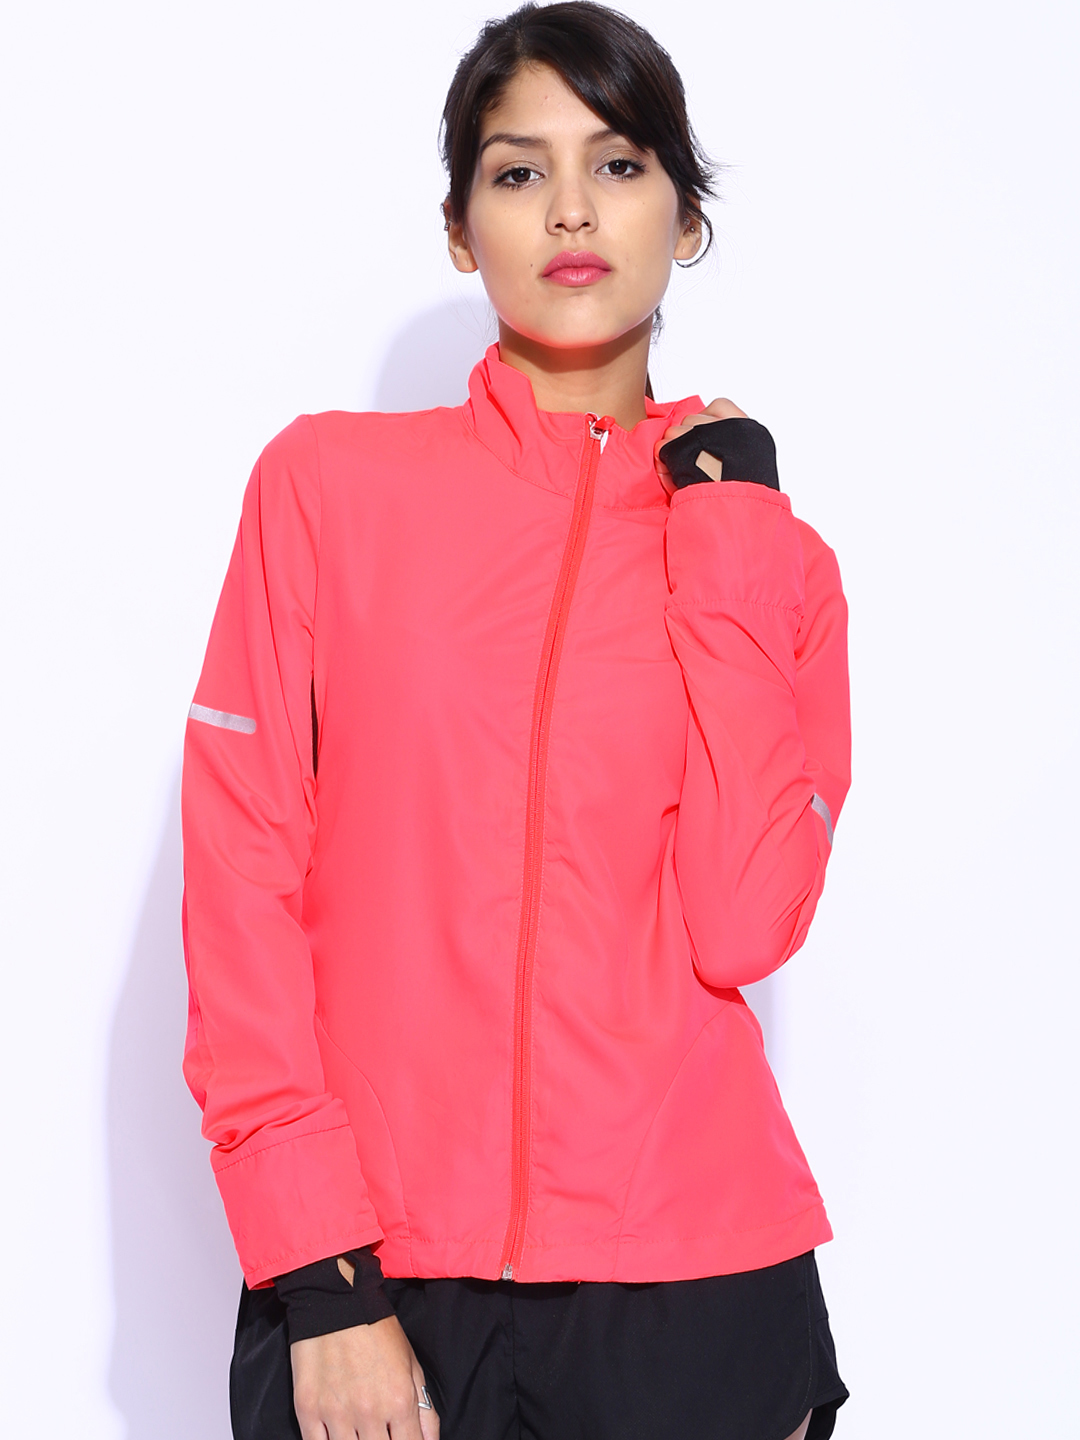 Buy ONLY Fluorescent Pink Jacket - Jackets for Women | Myntra